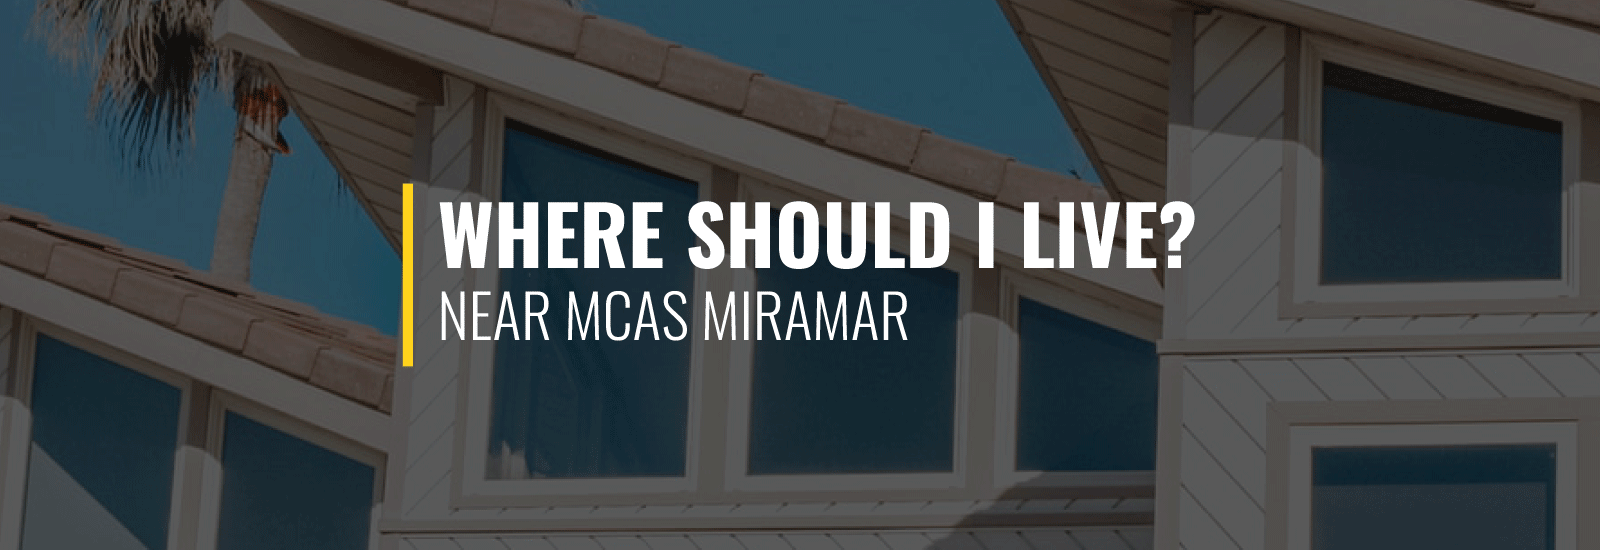 Where Should I Live Near MCAS Miramar?